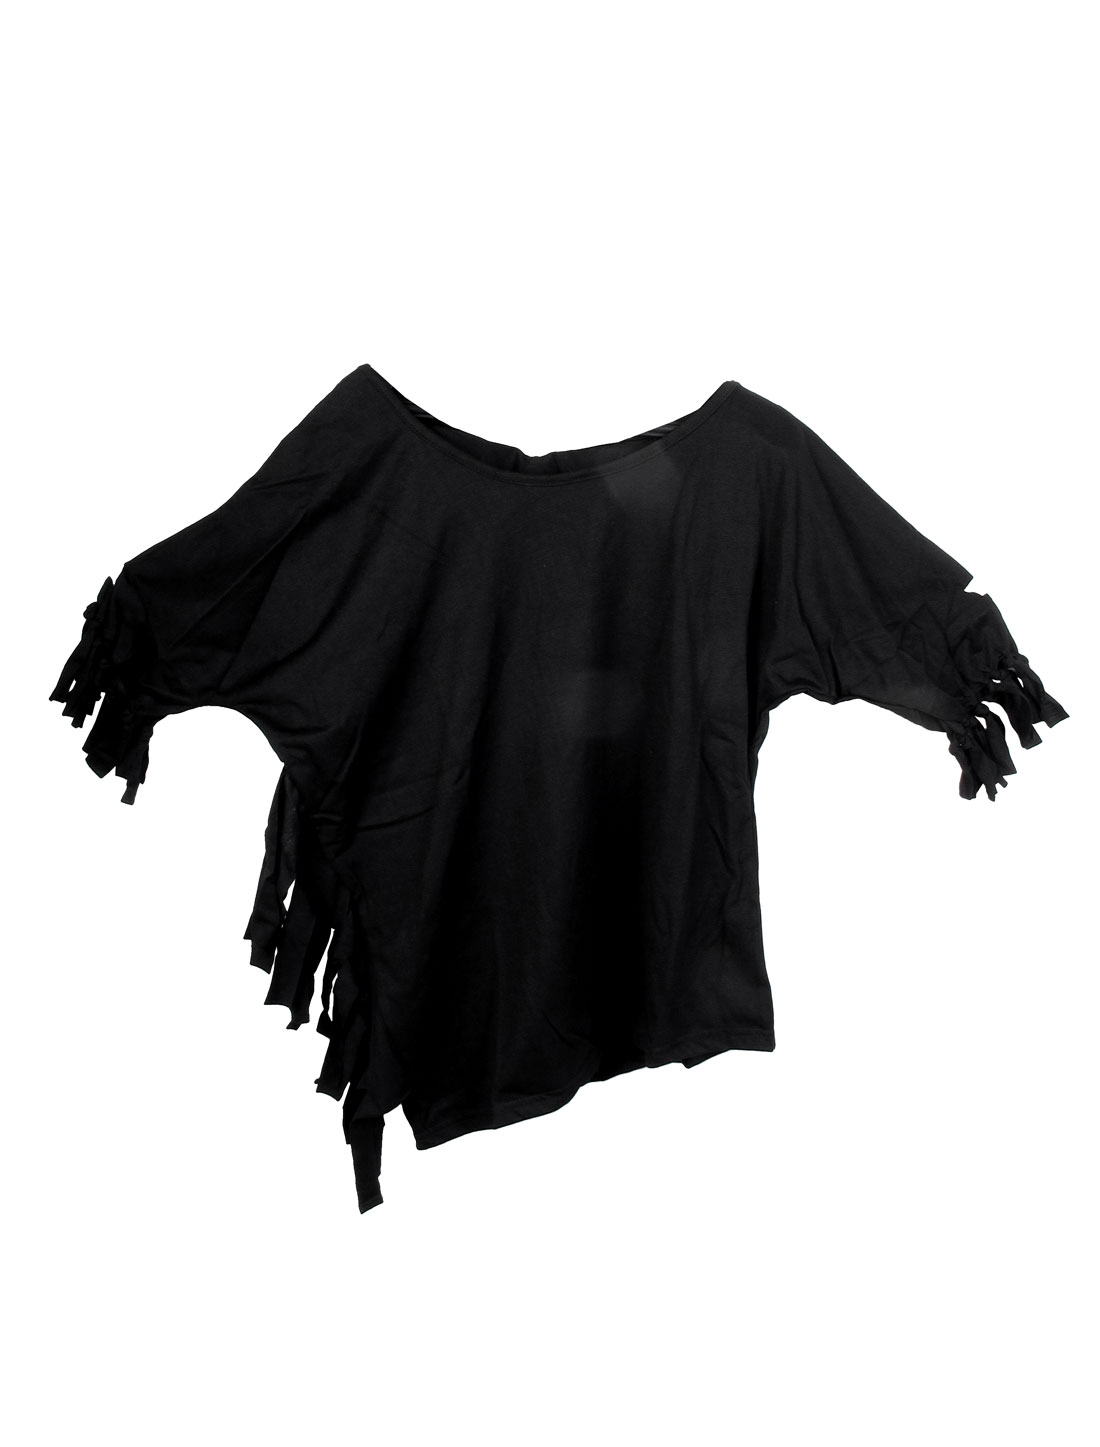 XS Black Solid Seam Fringed Top Blouse Shirt for Lady